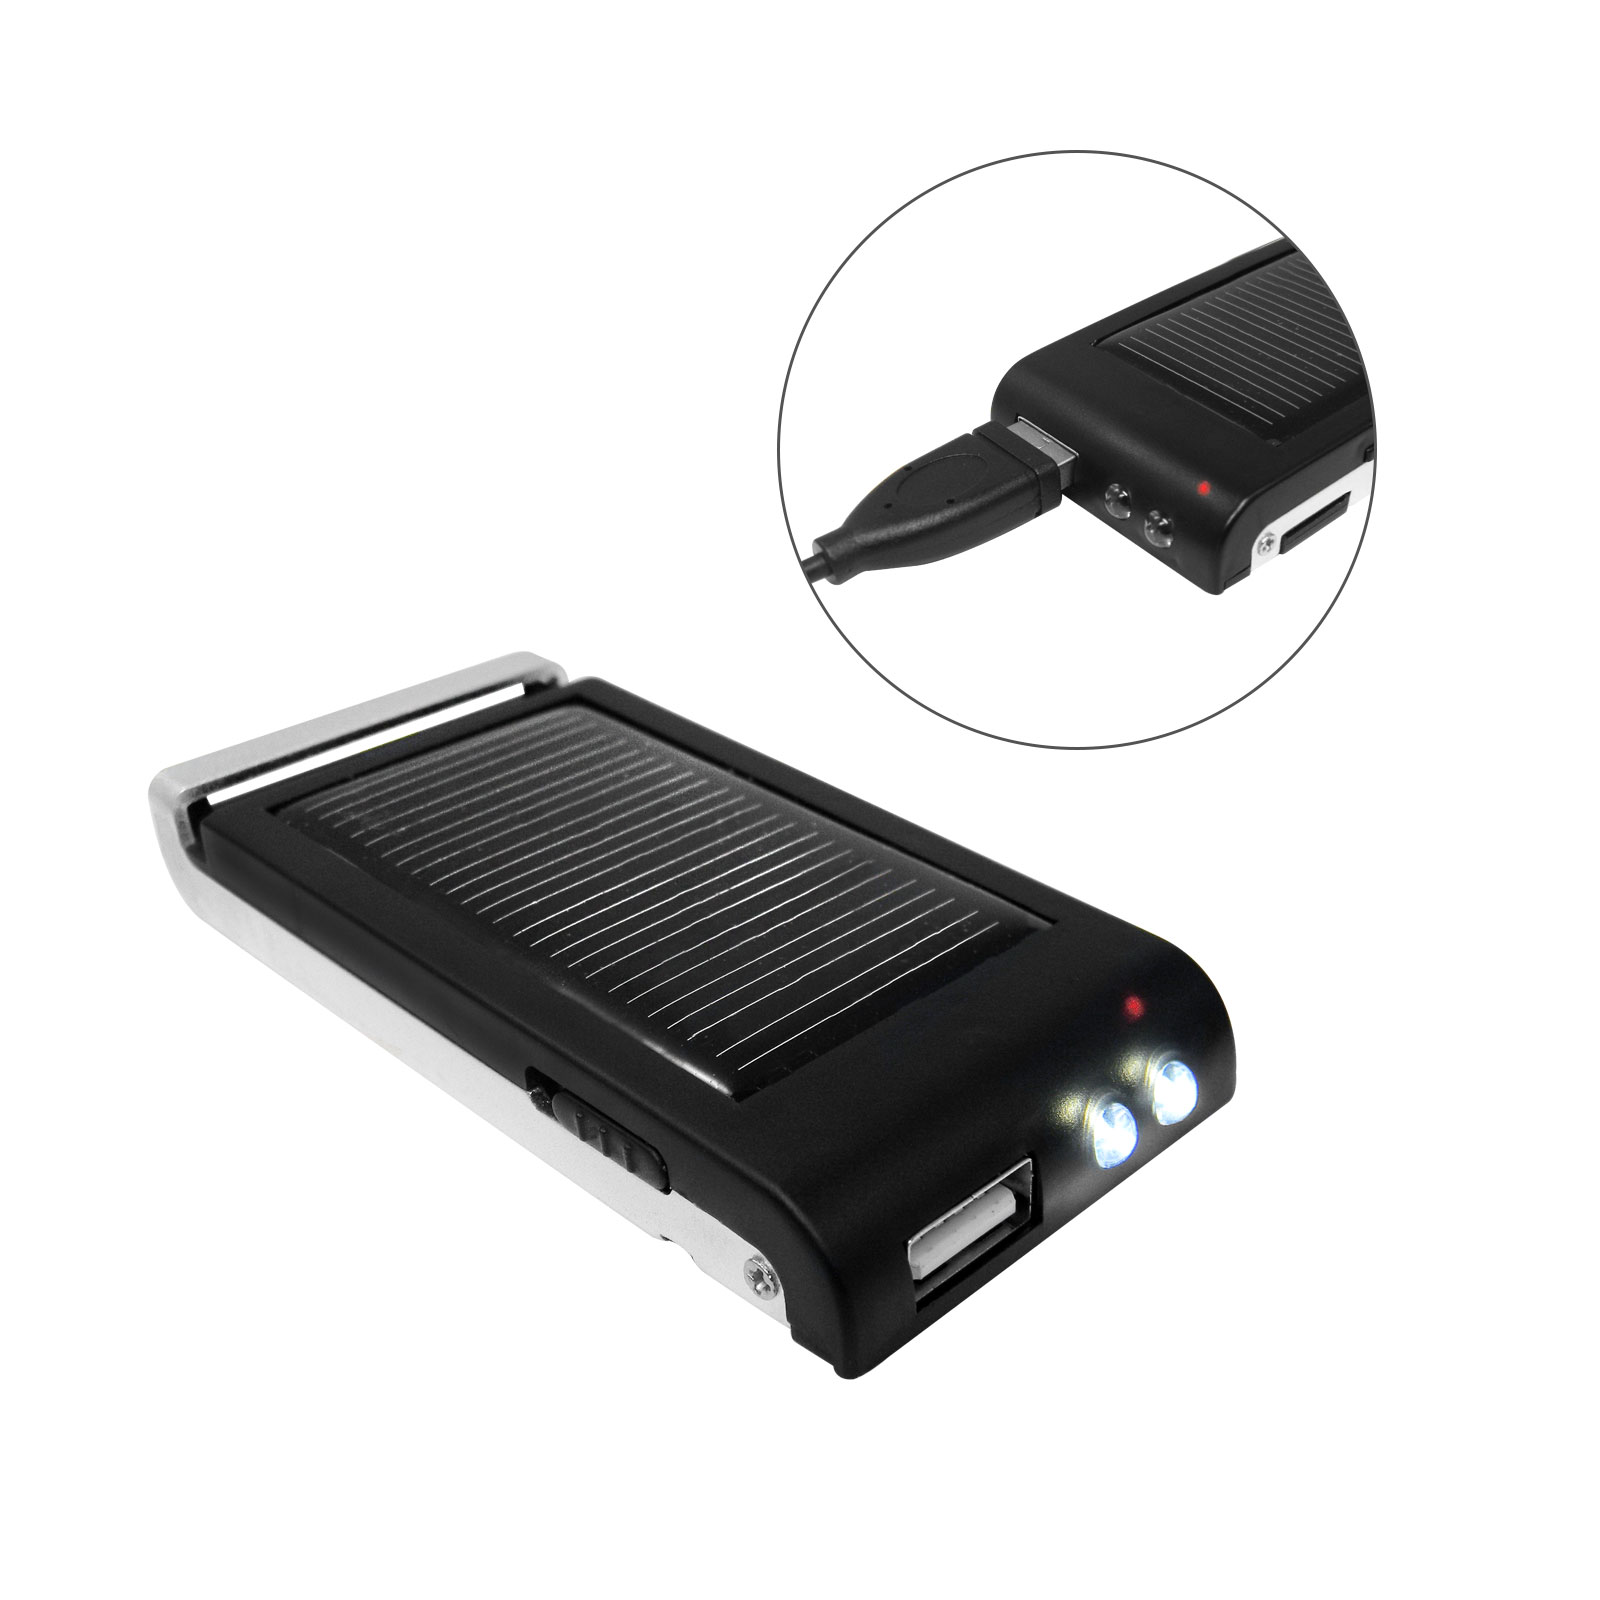 solarladeger t mit usb microusb powerbank mit. Black Bedroom Furniture Sets. Home Design Ideas